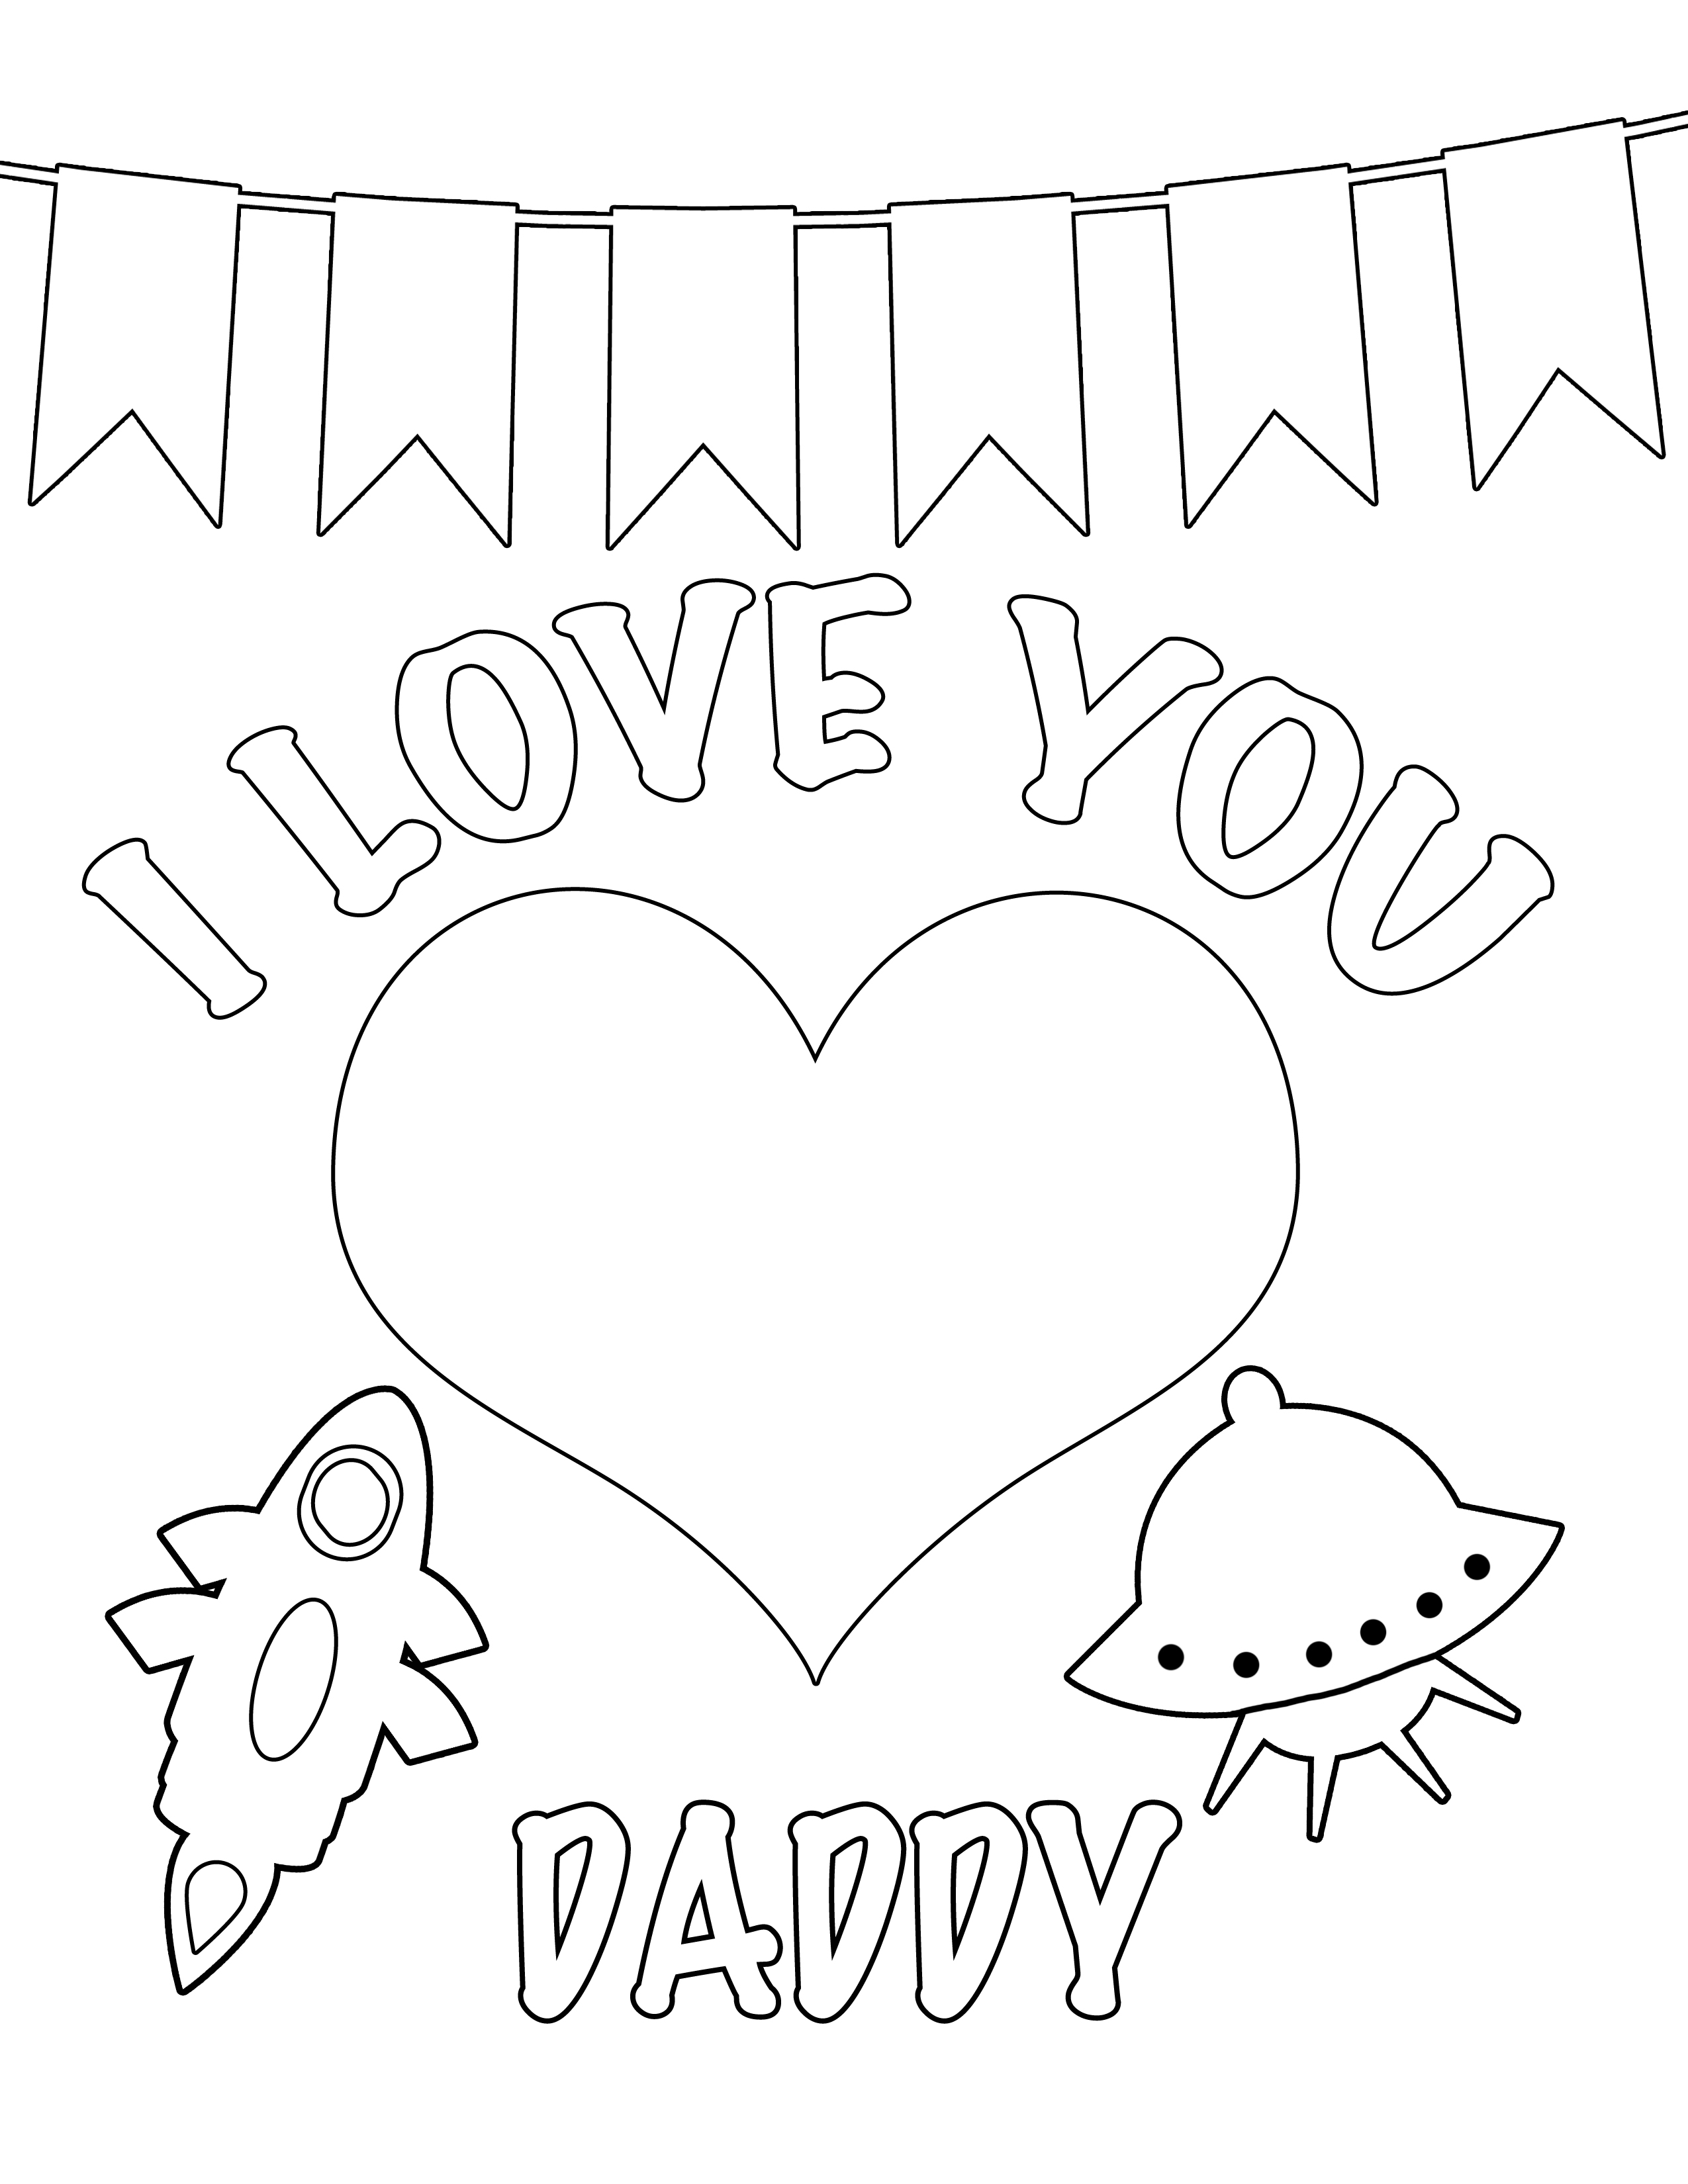 Valentine color by number printables - Free Printable Valentine S Day Coloring Pages